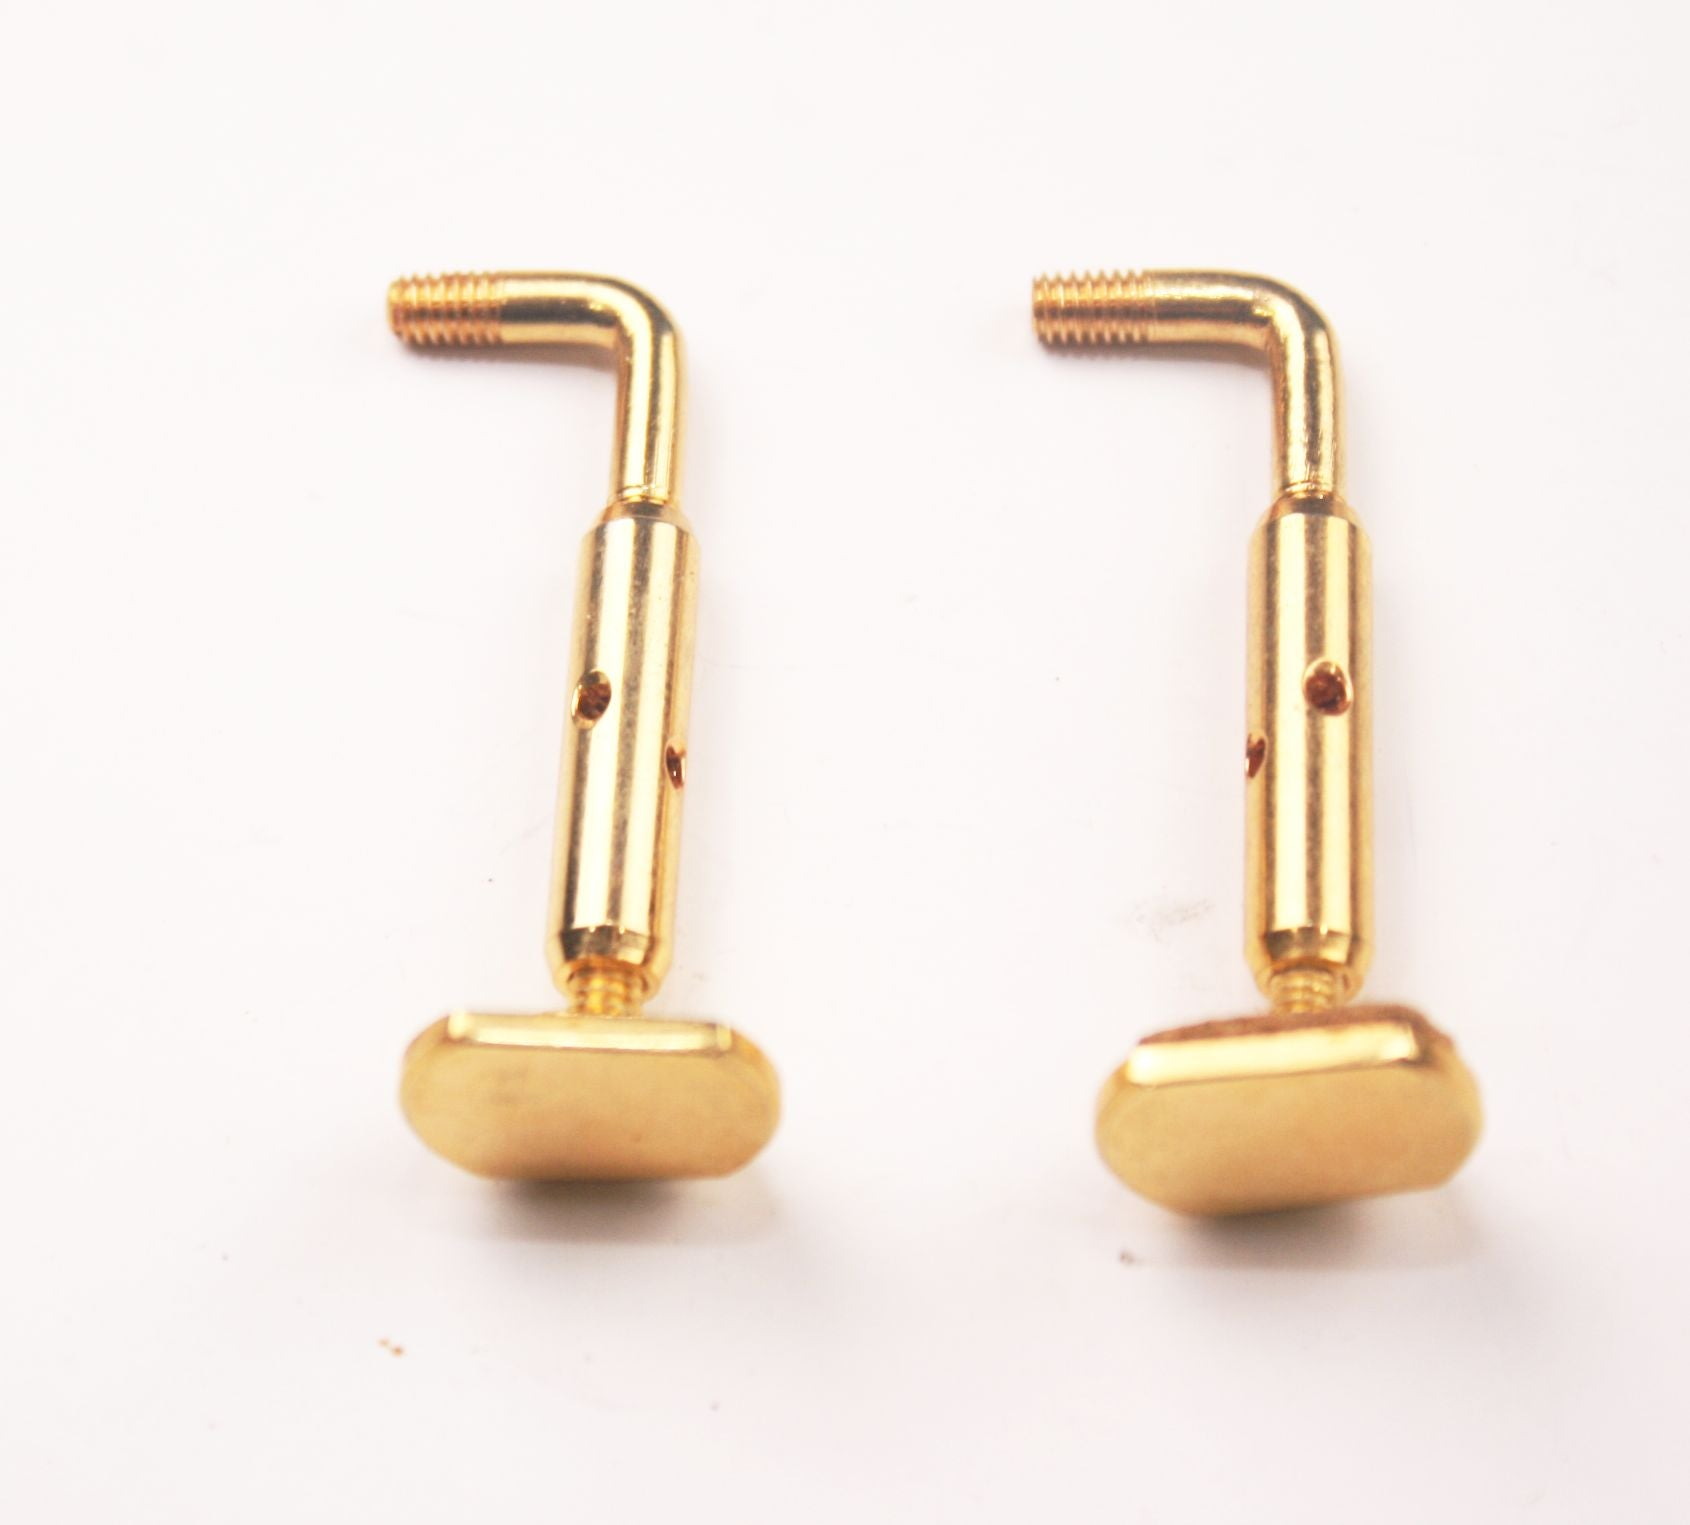 Violin chinrest brackets-semi Hill gold